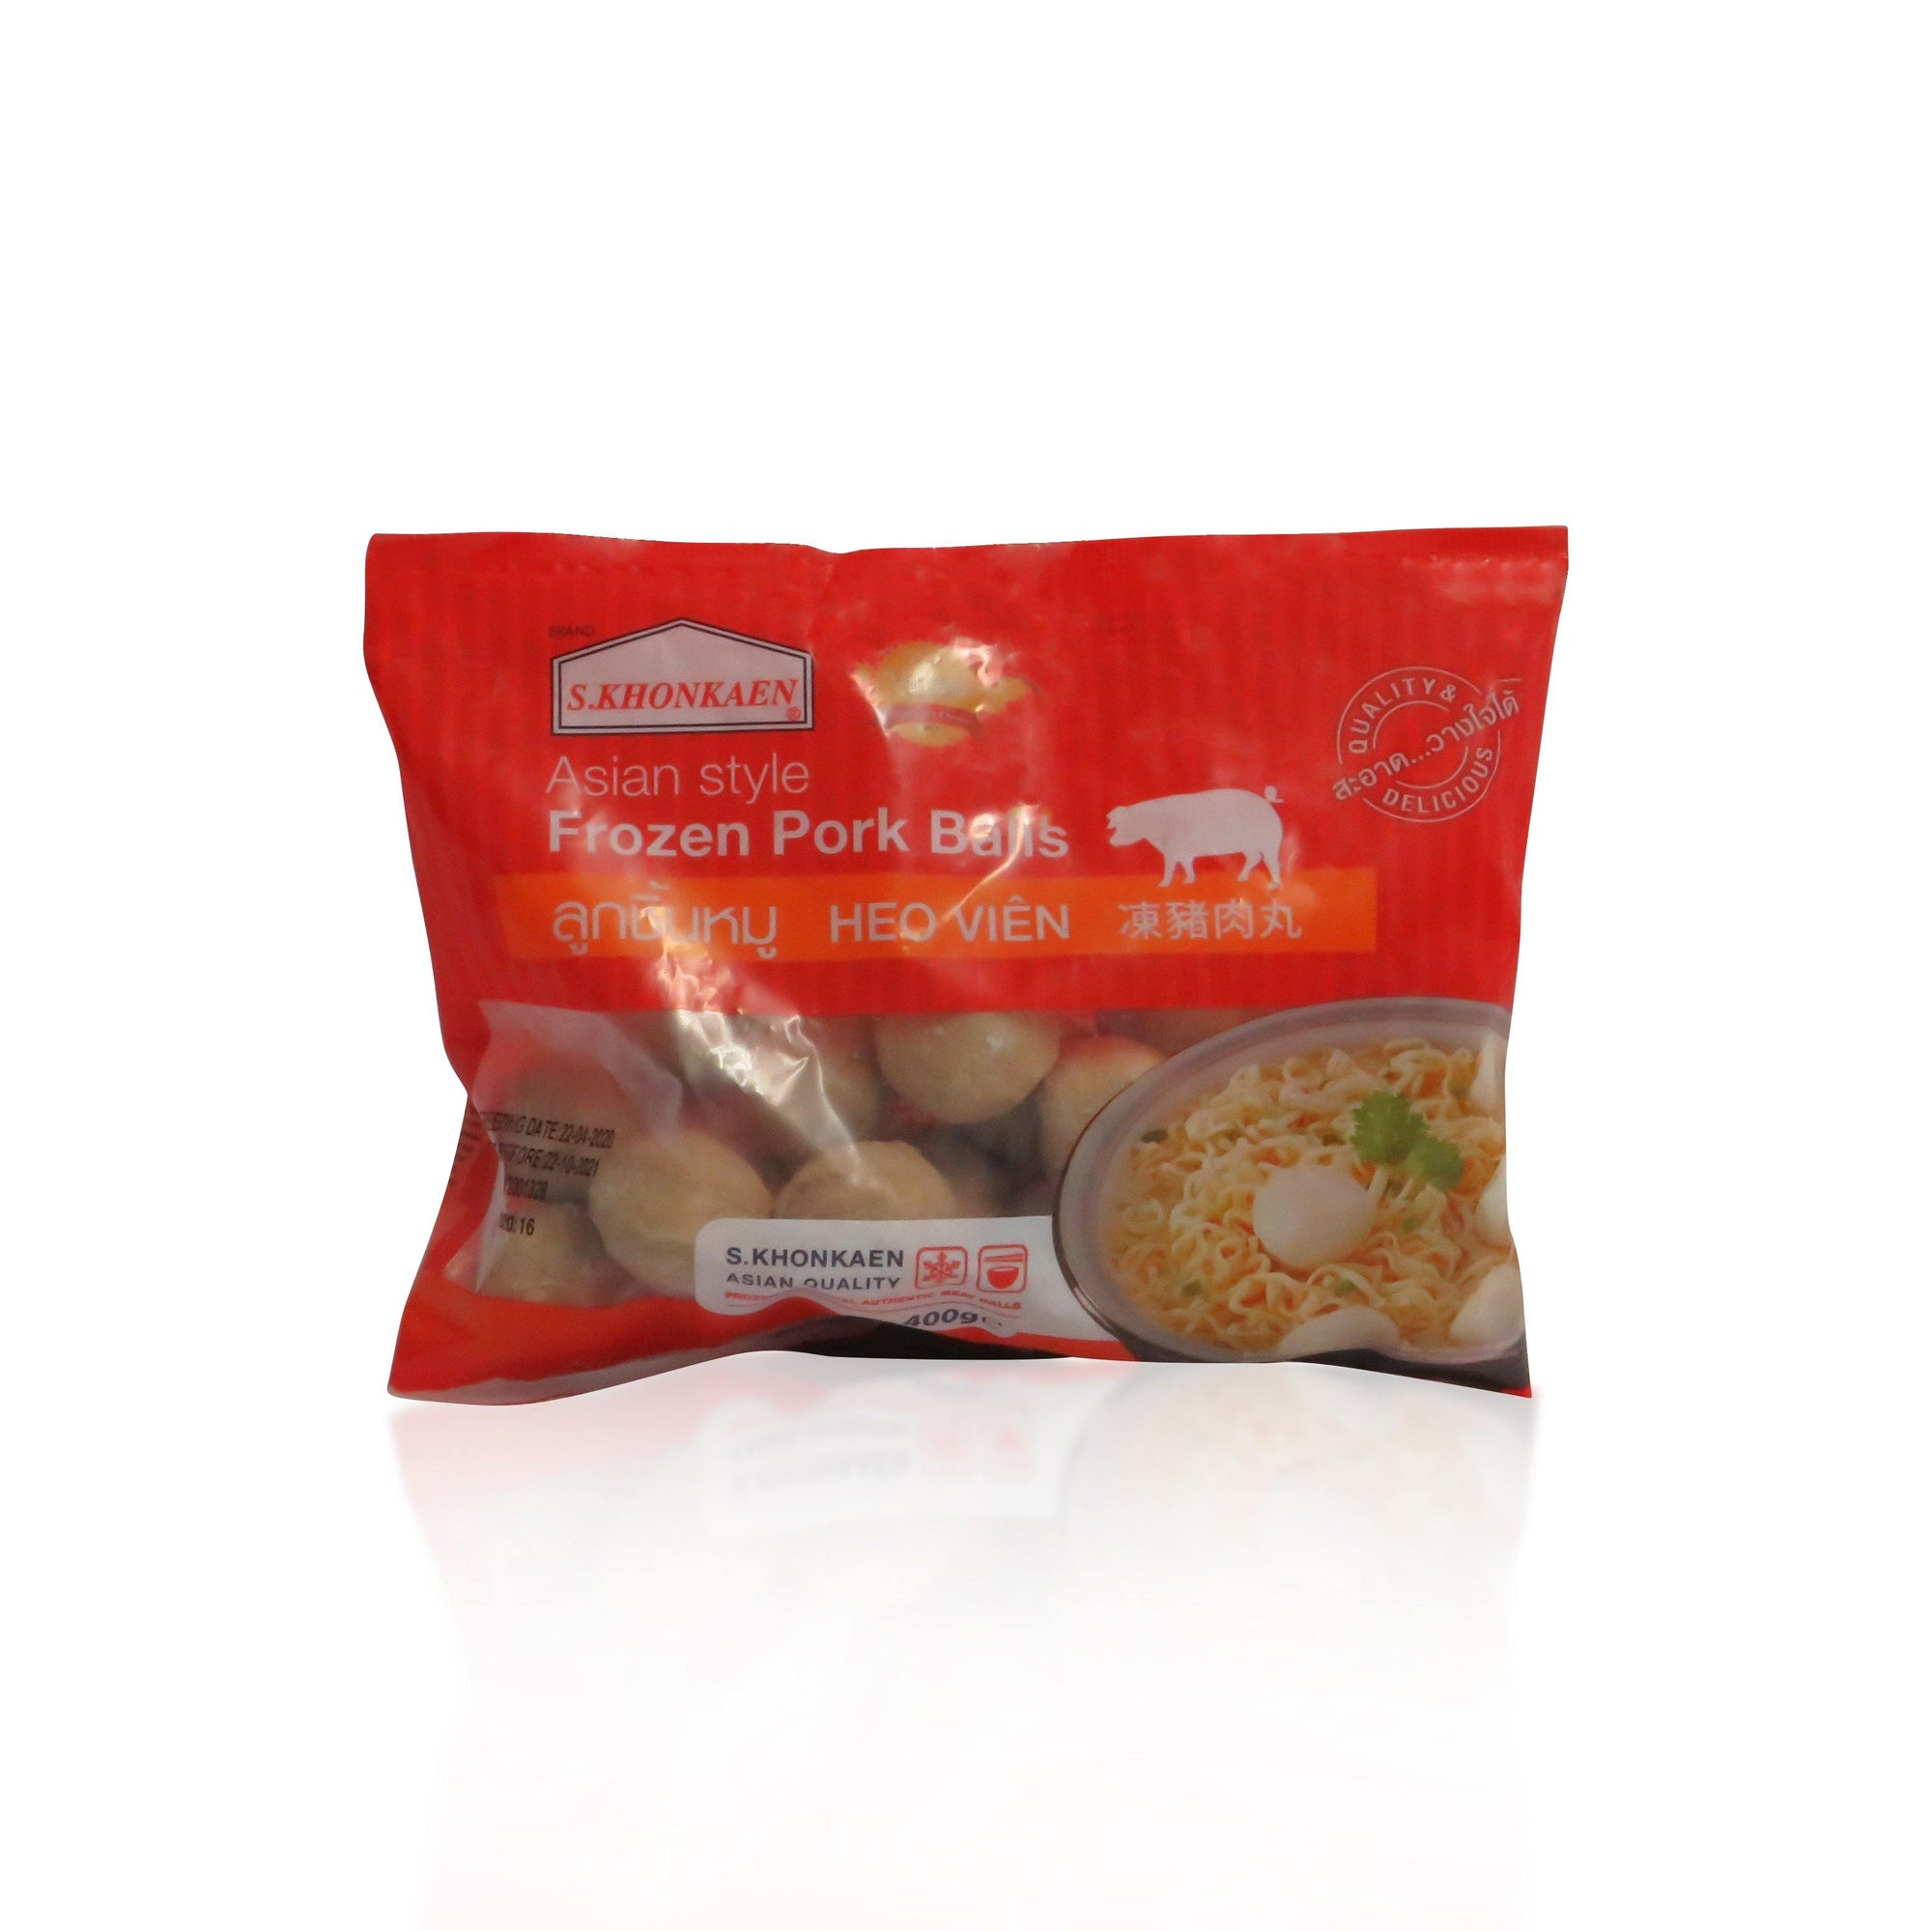 S. Khonkaen Frozen Pork Balls 400G - Asian Harvest